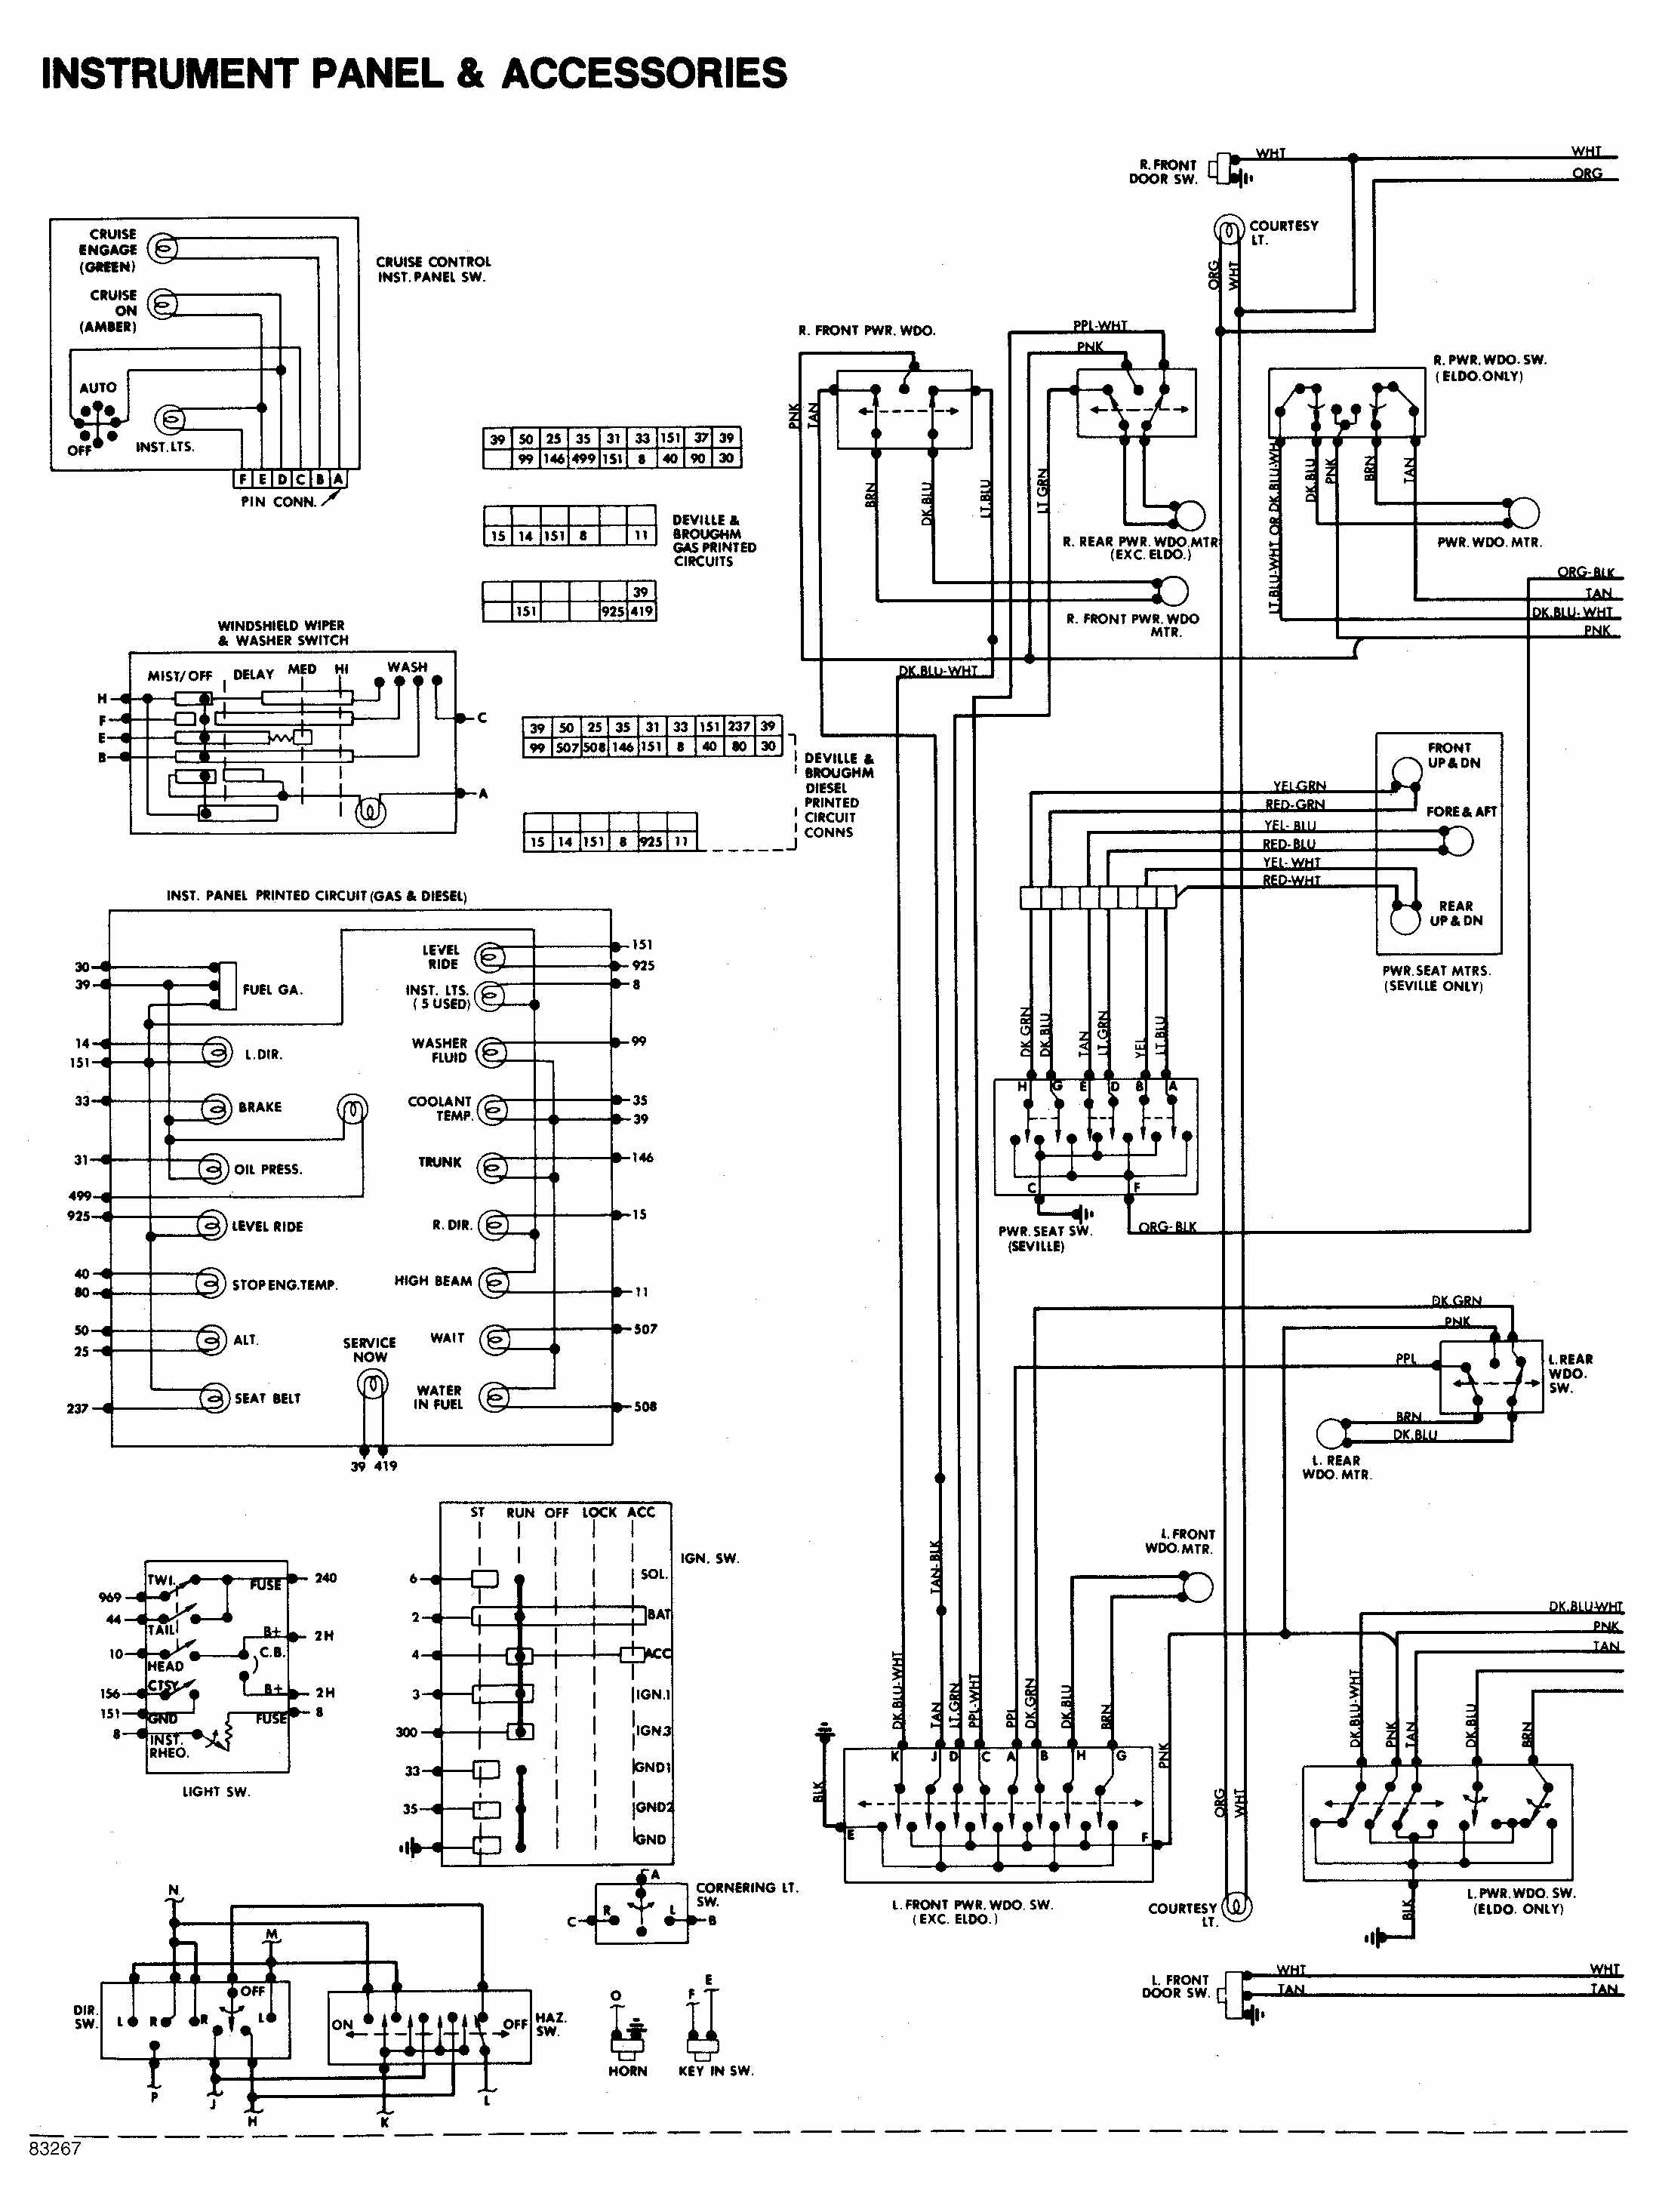 1999 cadillac radio wiring diagram